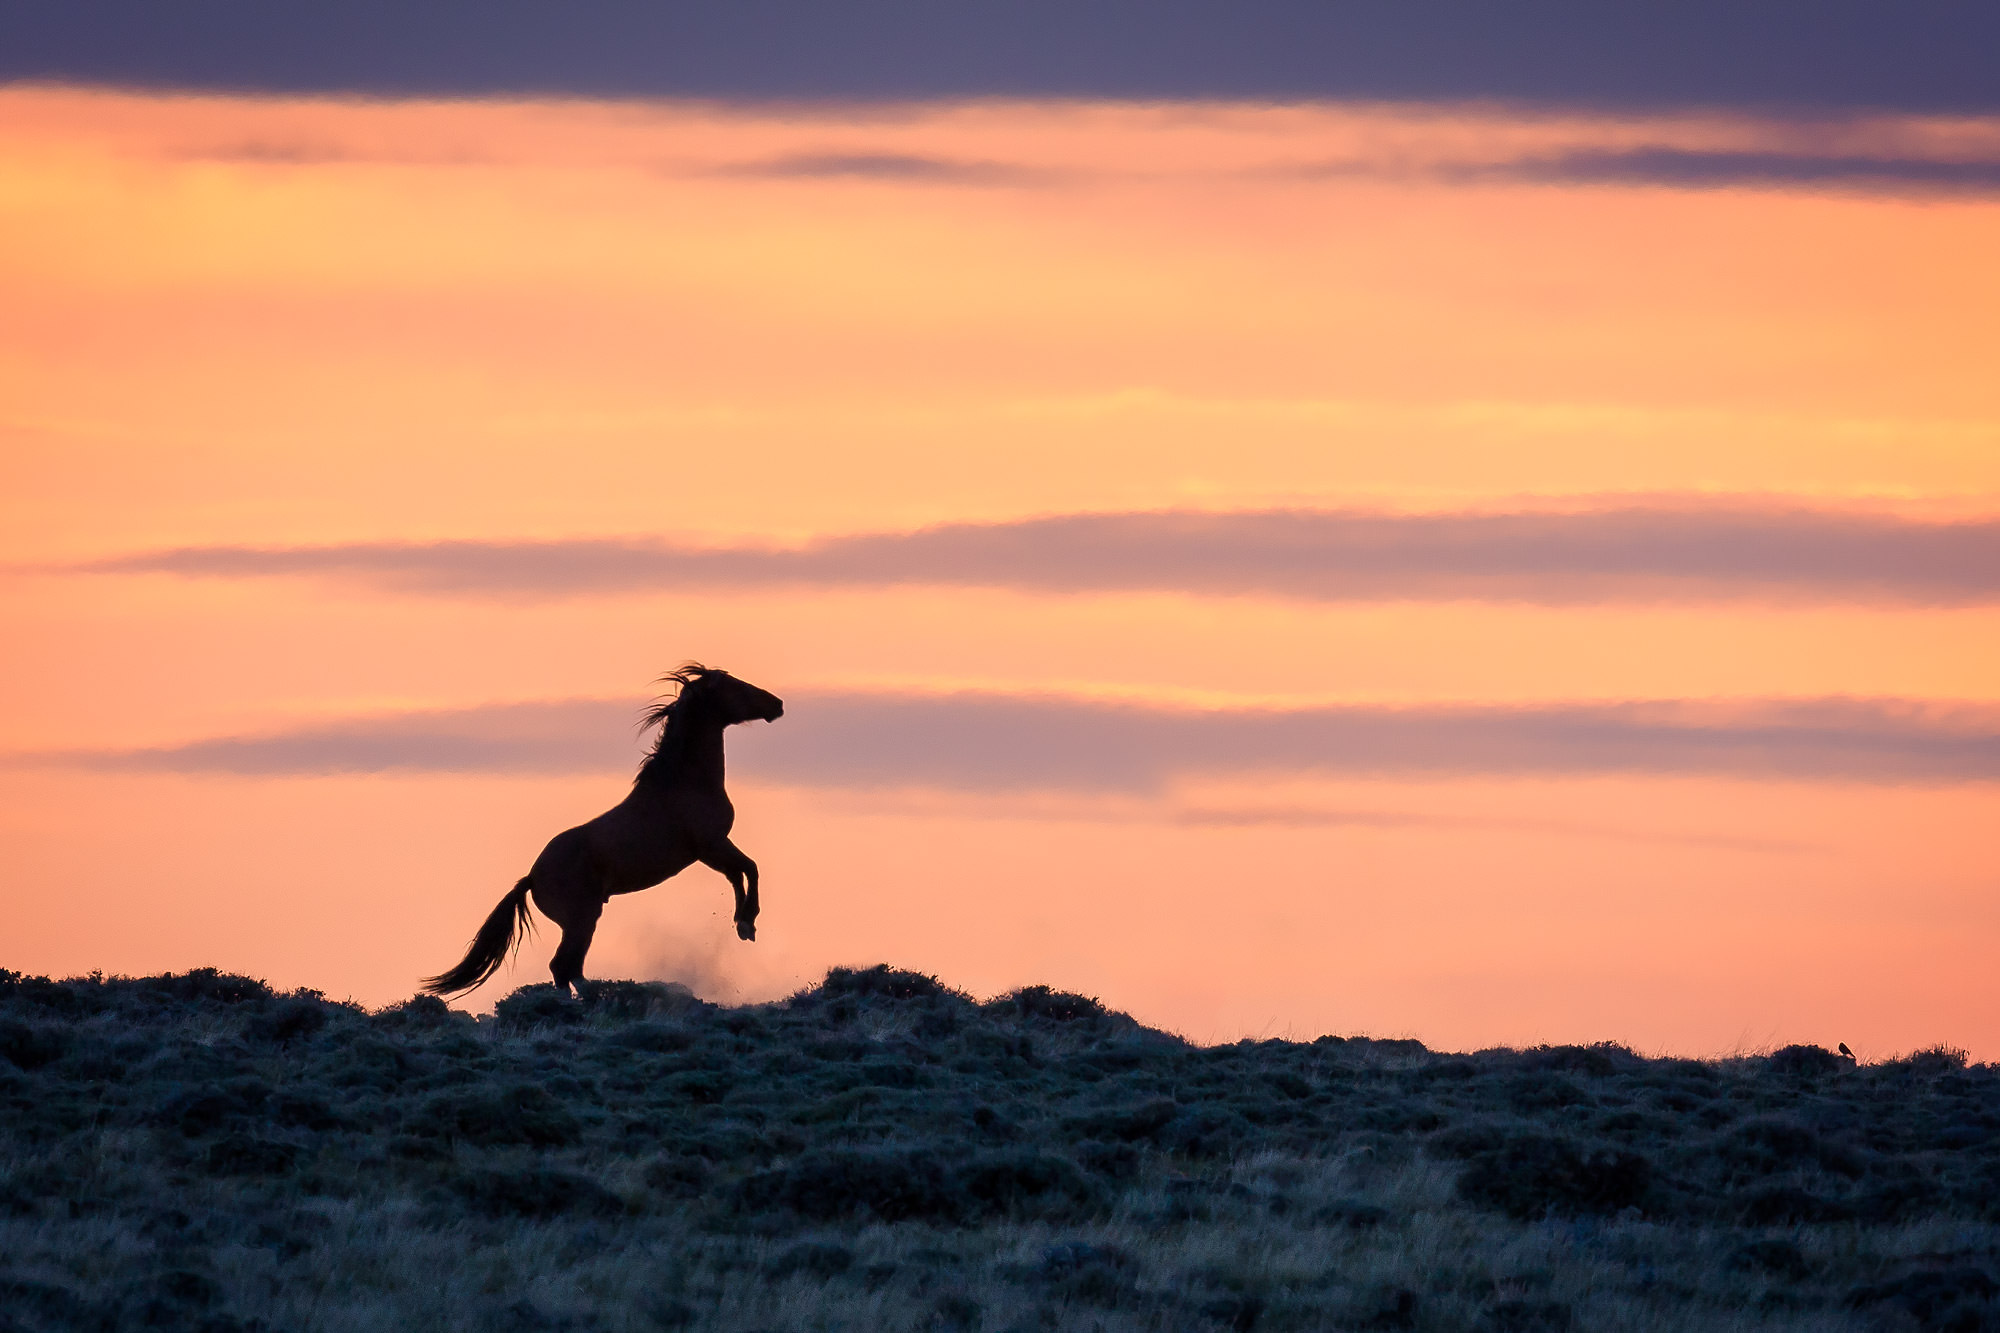 Wild Horse Fine Art Photography A Limited Edition photograph of a Wild Horse raring up in the pre-dawn sunrise light in Southern...